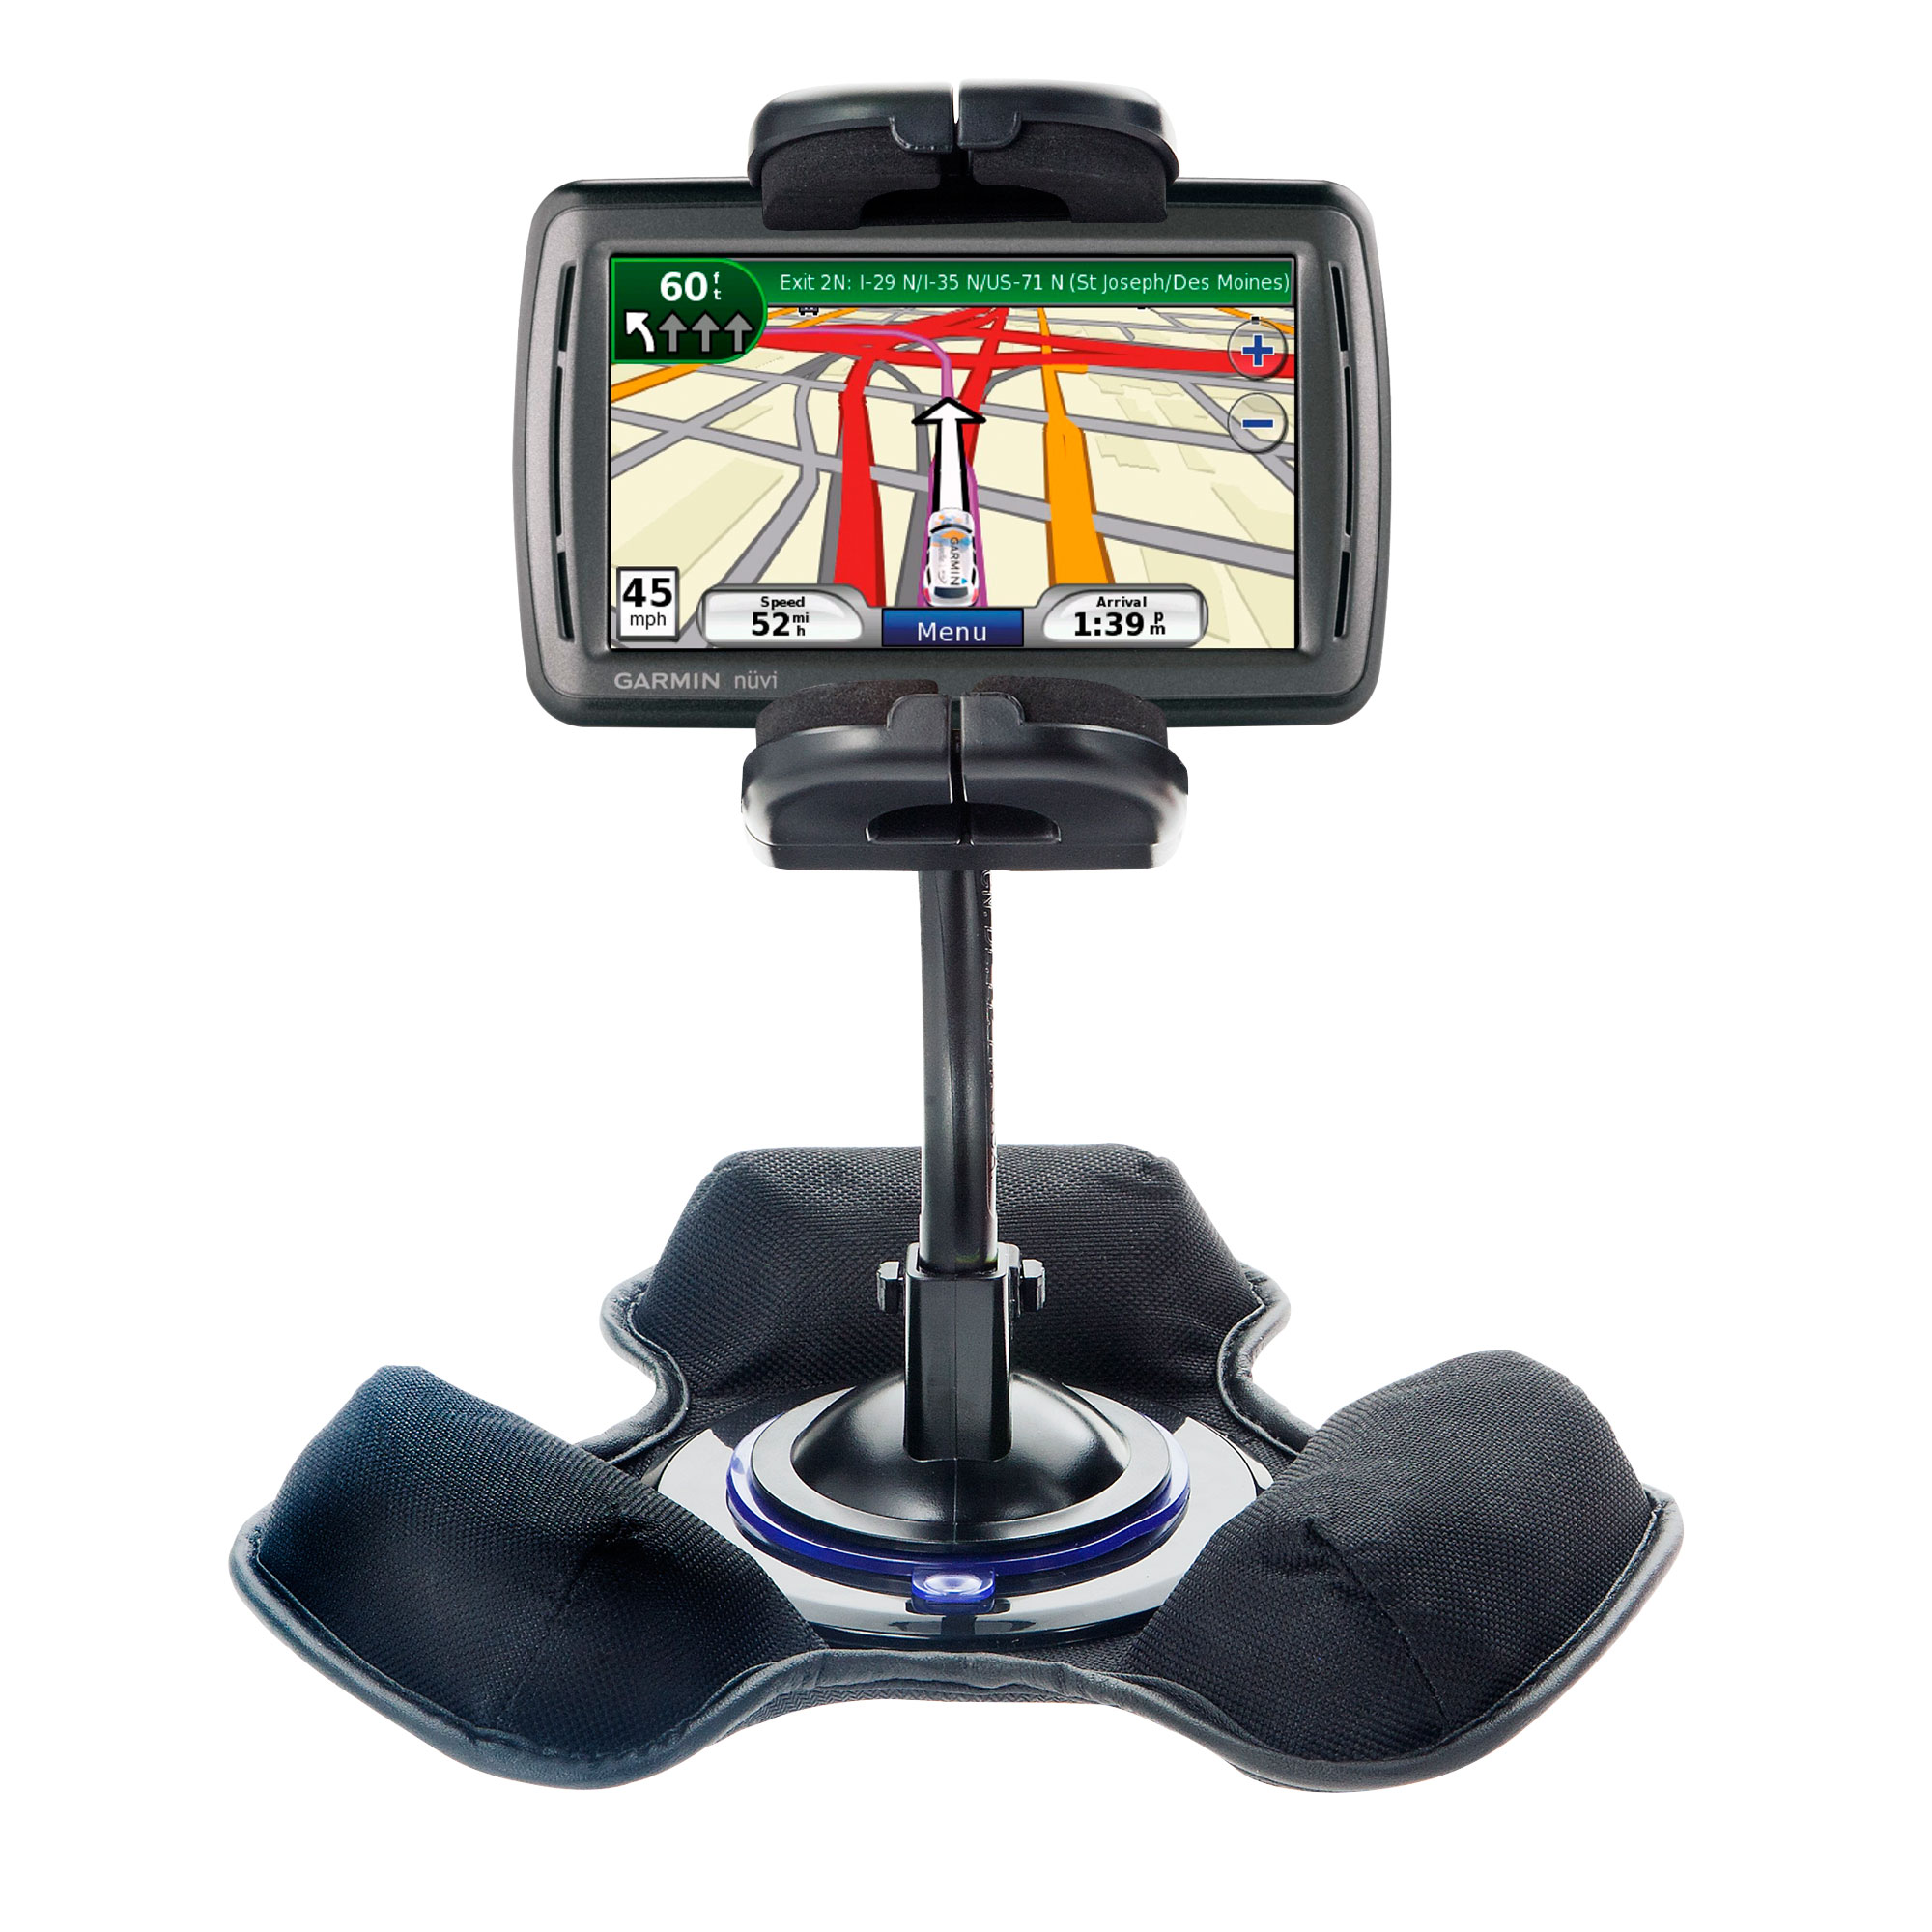 Dash and Windshield Holder compatible with the Garmin Nuvi 860